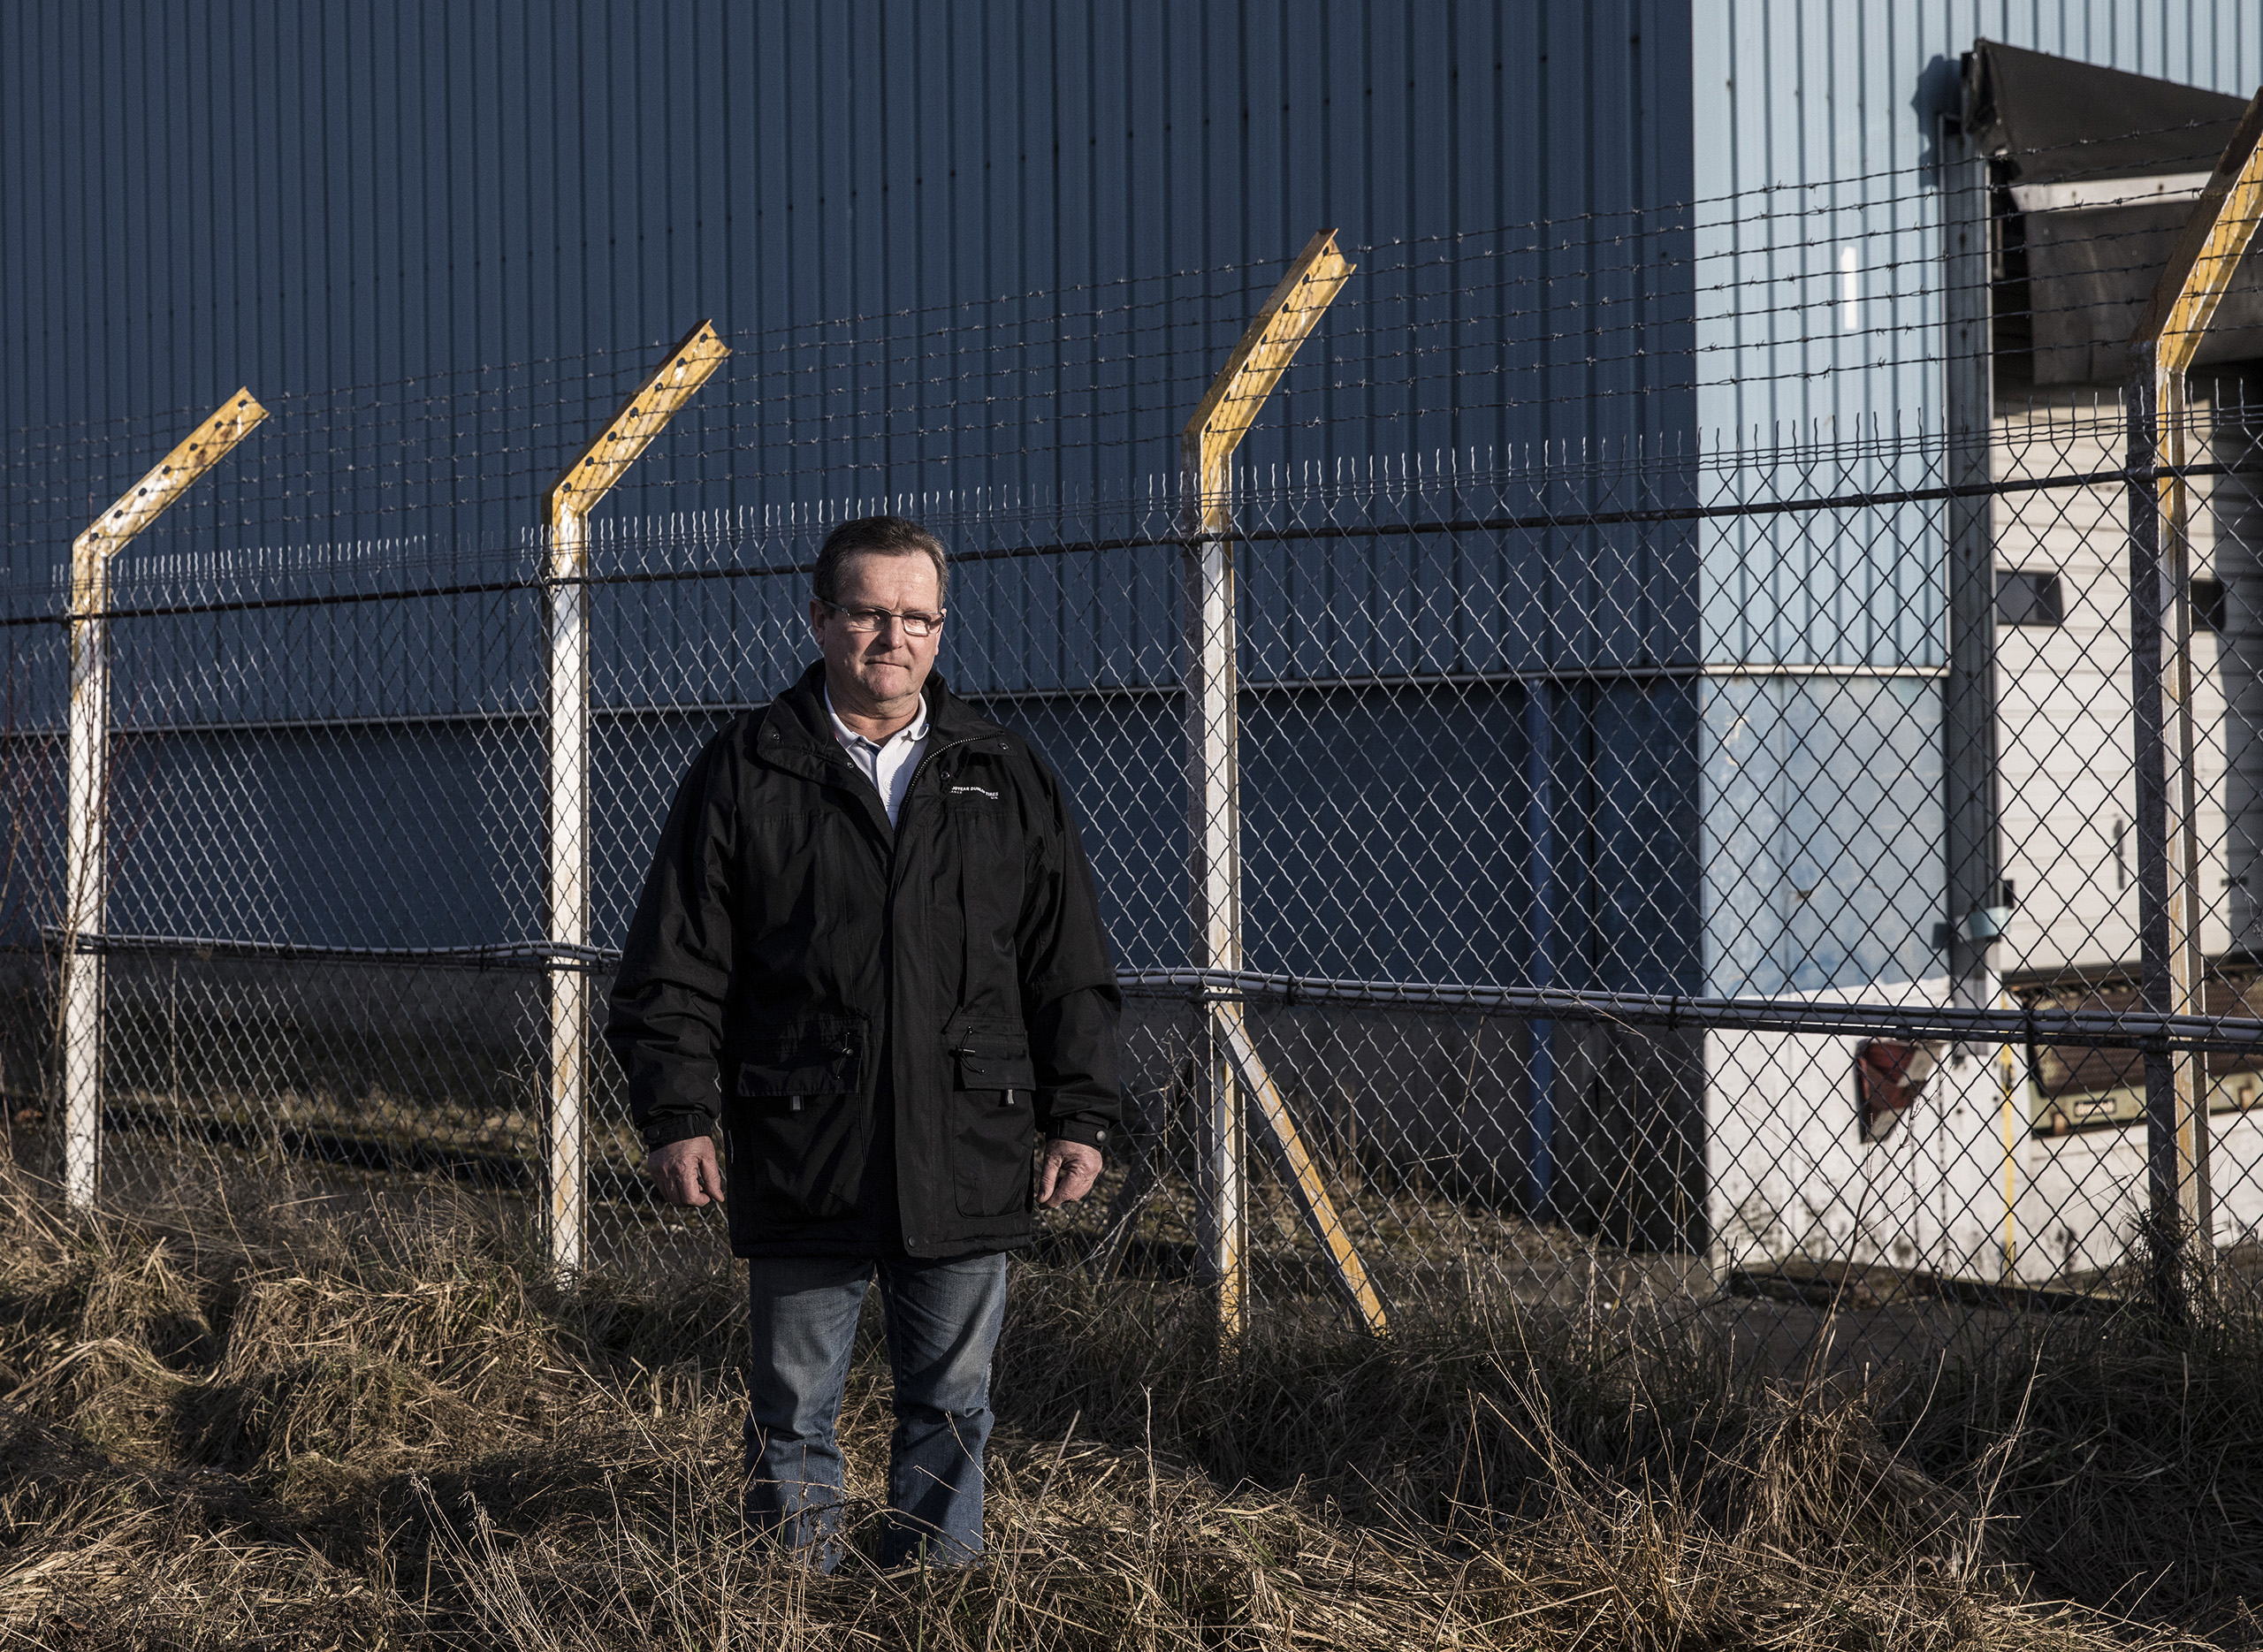 "Alain Dupuis, 64, former Goodyear worker in Amiens, until it closed in 2014 after a violent battle between activists and police. Now the mayor of the tiny village of Bourdon, he is standing in front of the now-deserted Goodyear plant. ""I am still thinking who to vote for. I have voted Socialist since 1981, but I've very disappointed with the left. More and more people in my village support Marine Le Pen. I think the National Front is still deeply racist.""                                                                                                         ."